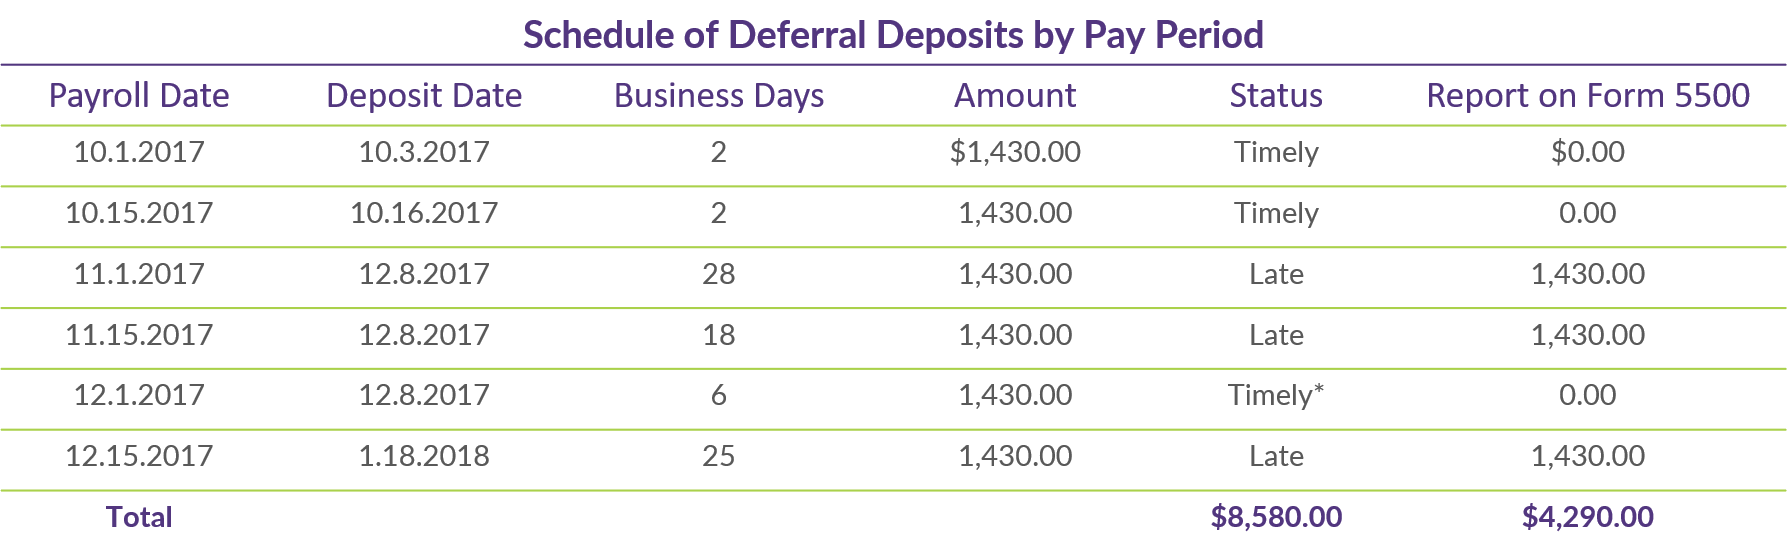 Q3 COTQ Table_Schedule of Deferral Deposits_1